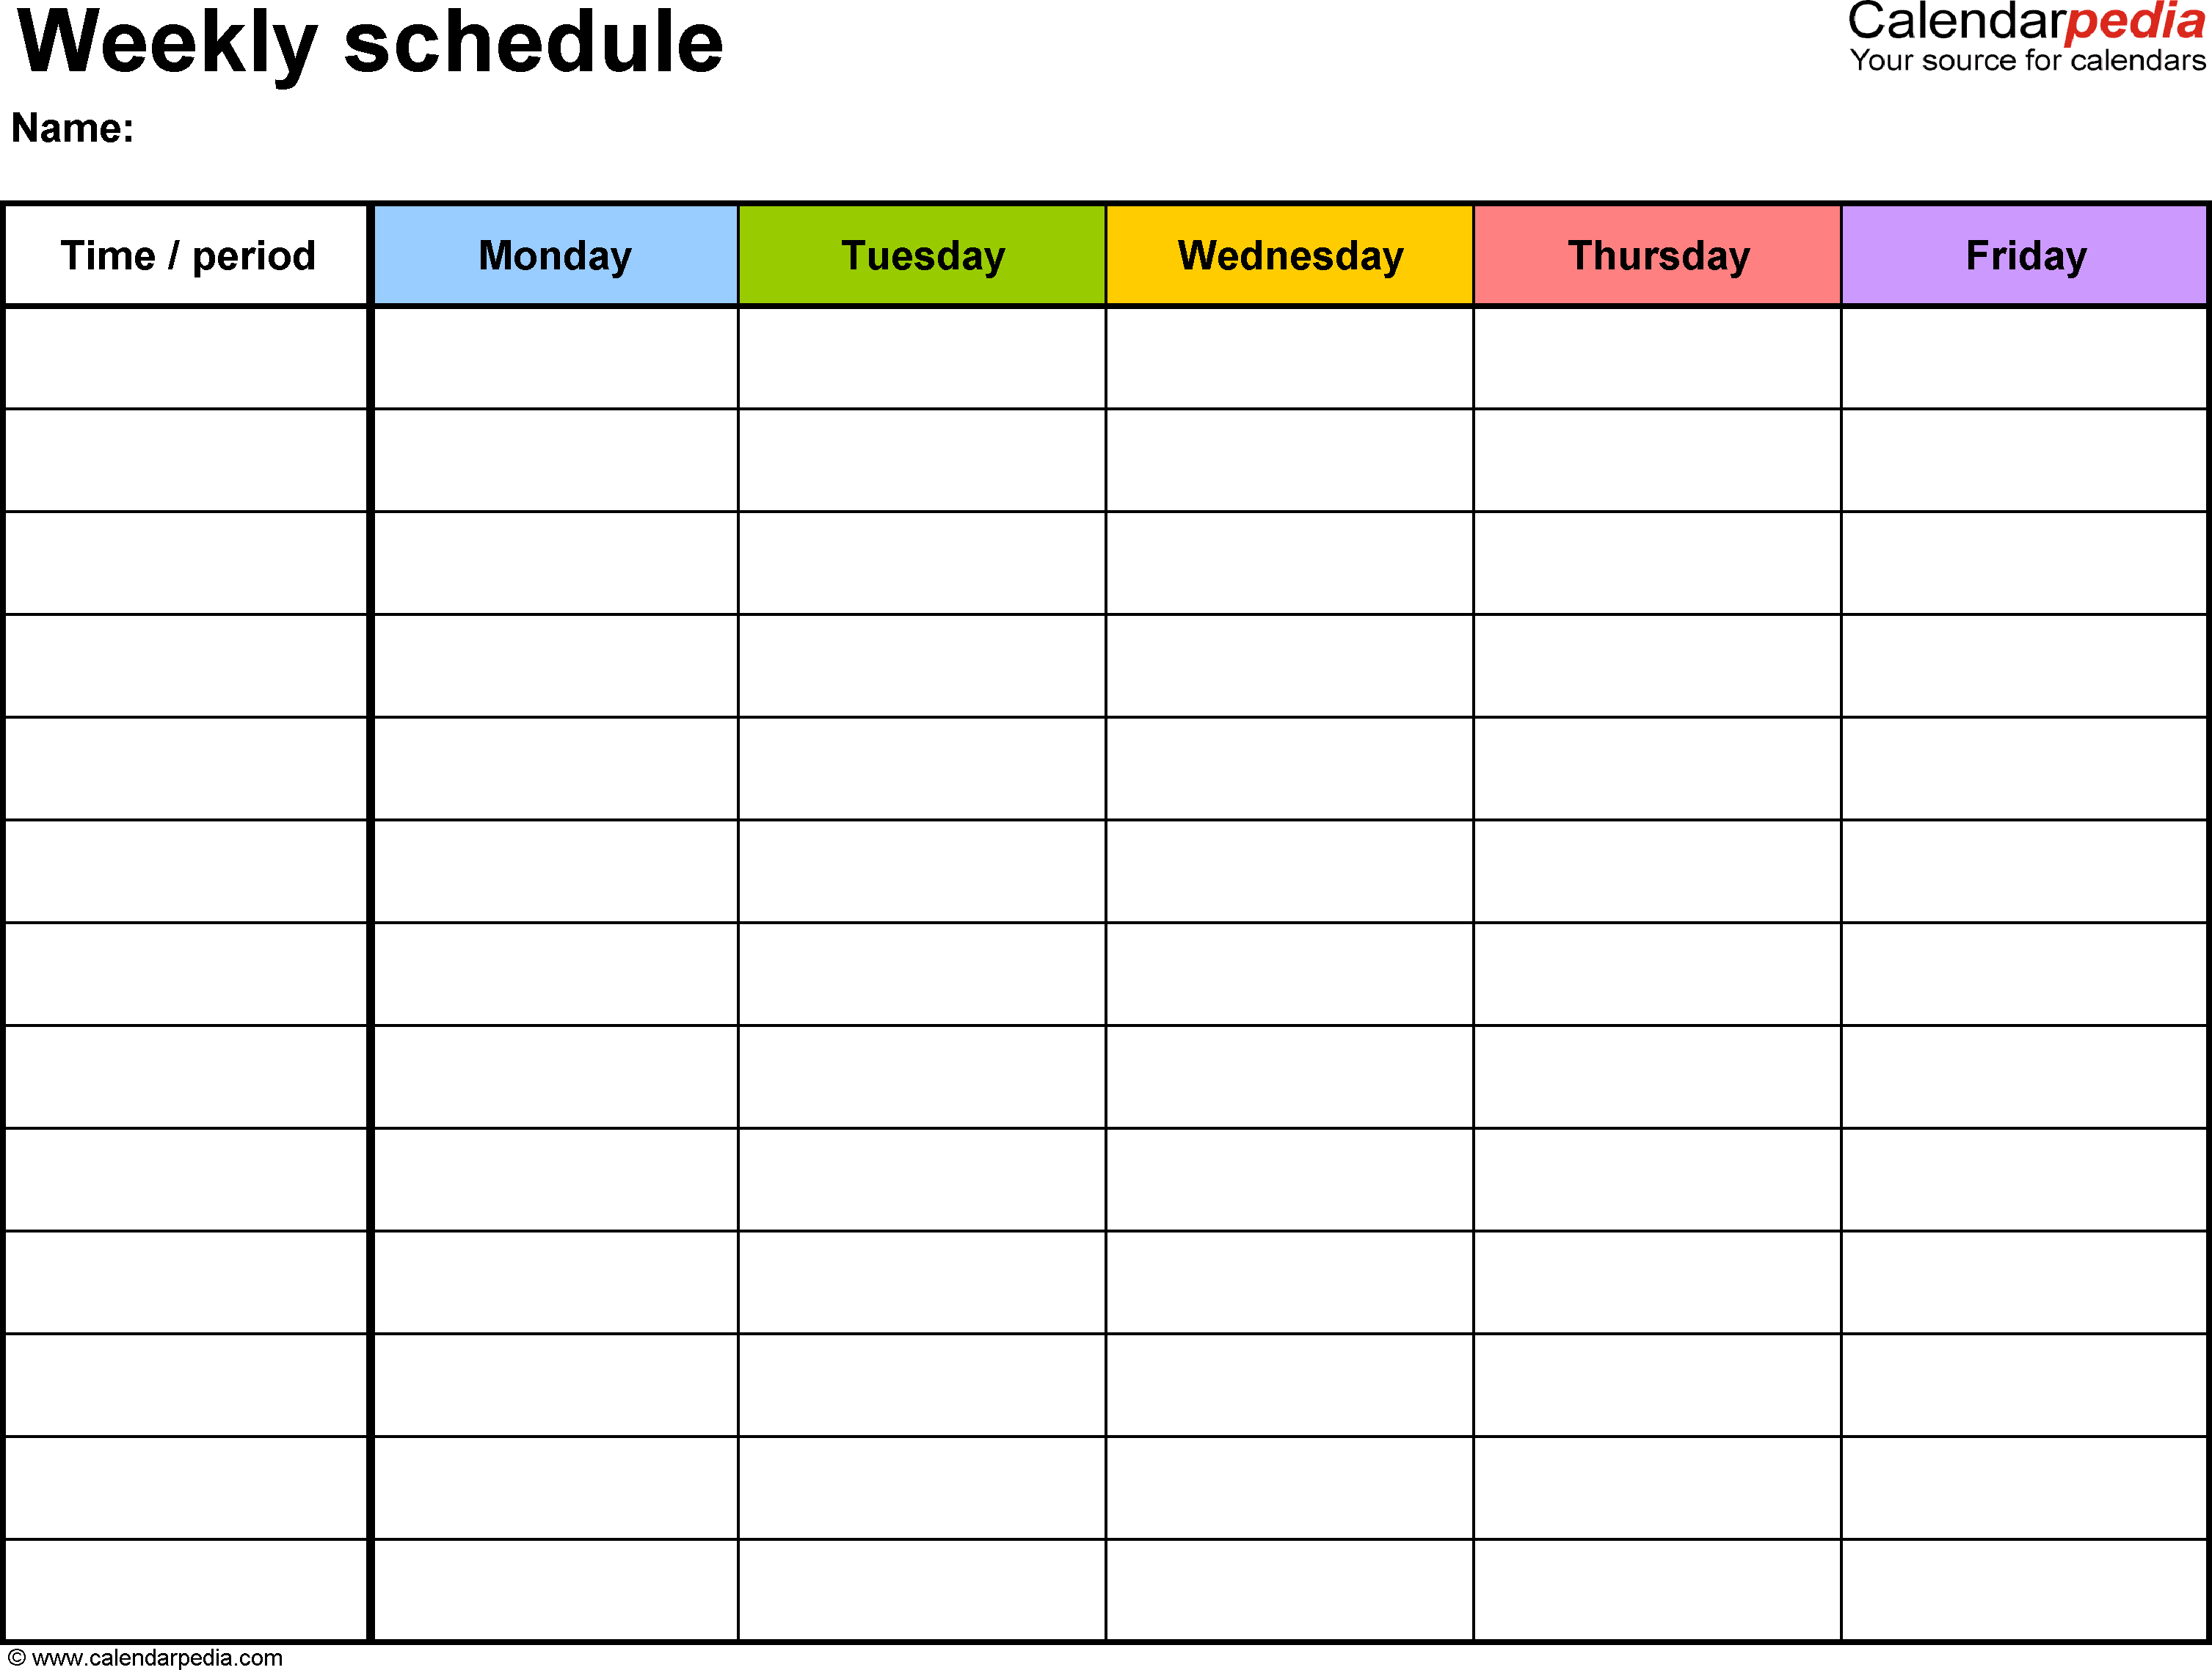 Free Weekly Schedule Templates for Word 18 templates